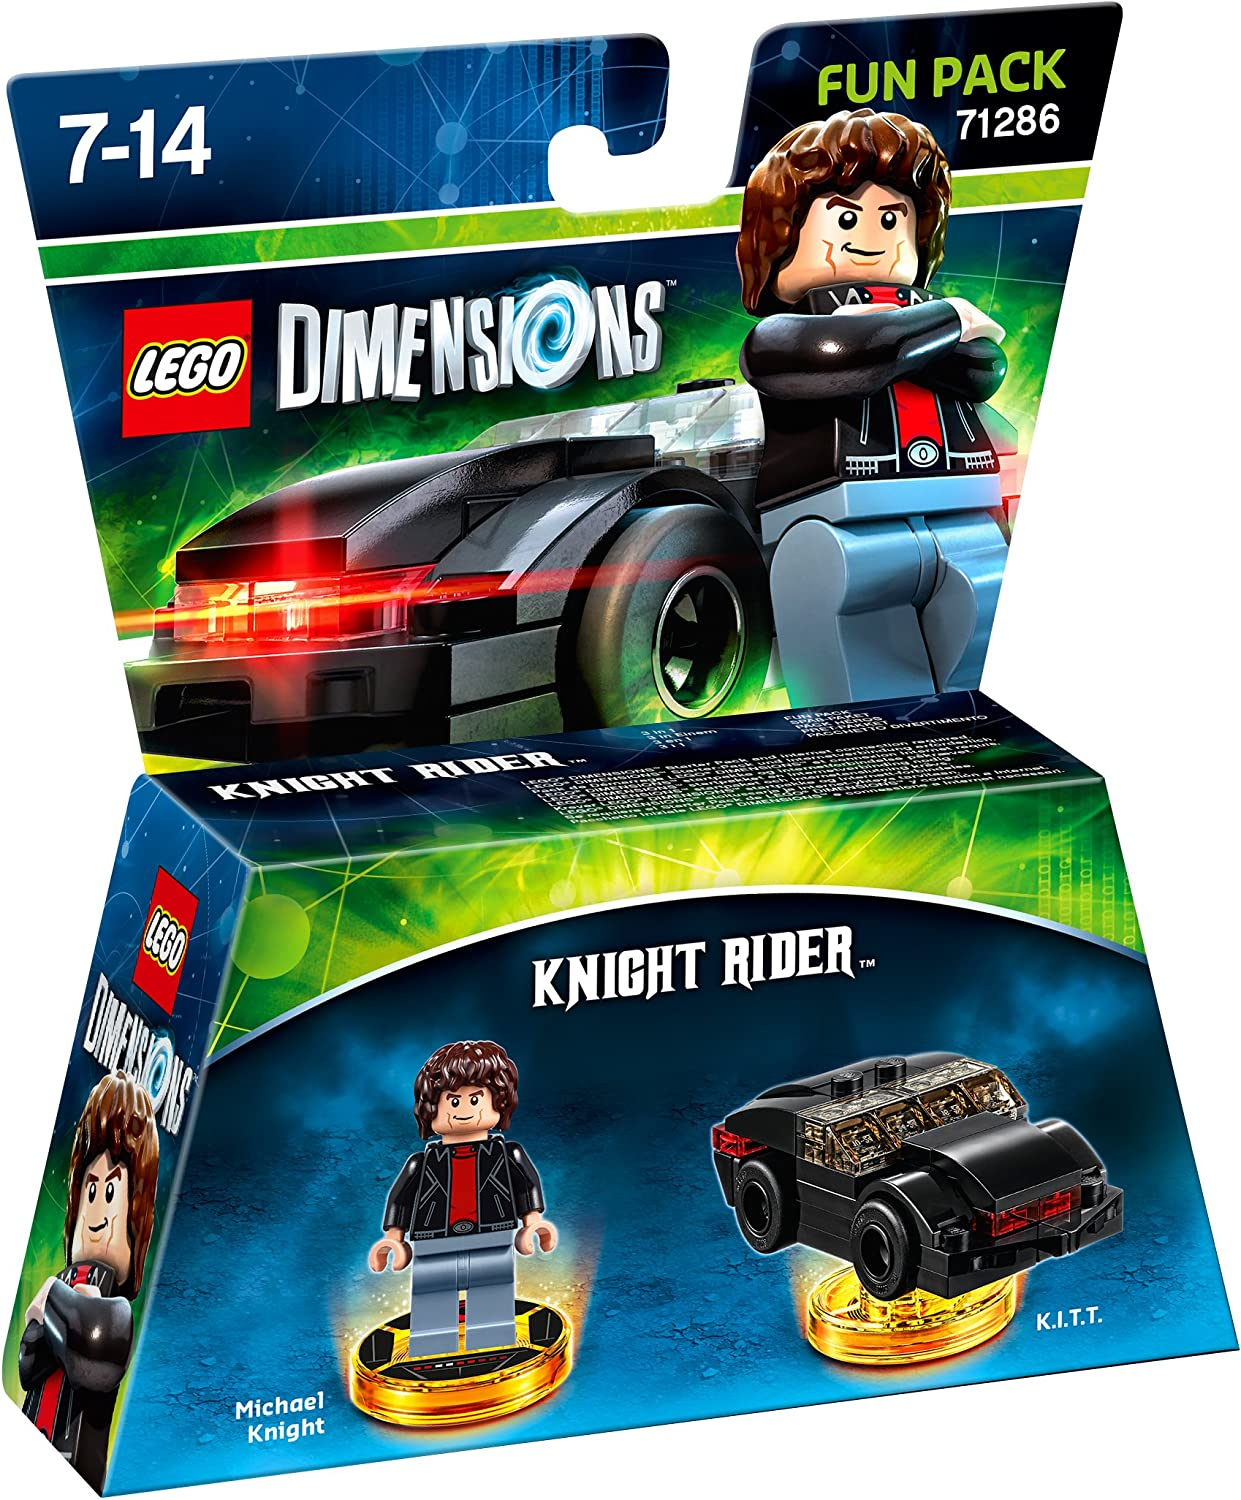 LEGO Dimensions Fun Pack: Knight Rider, Pack de diversión Knight Rider: Amazon.es: Videojuegos